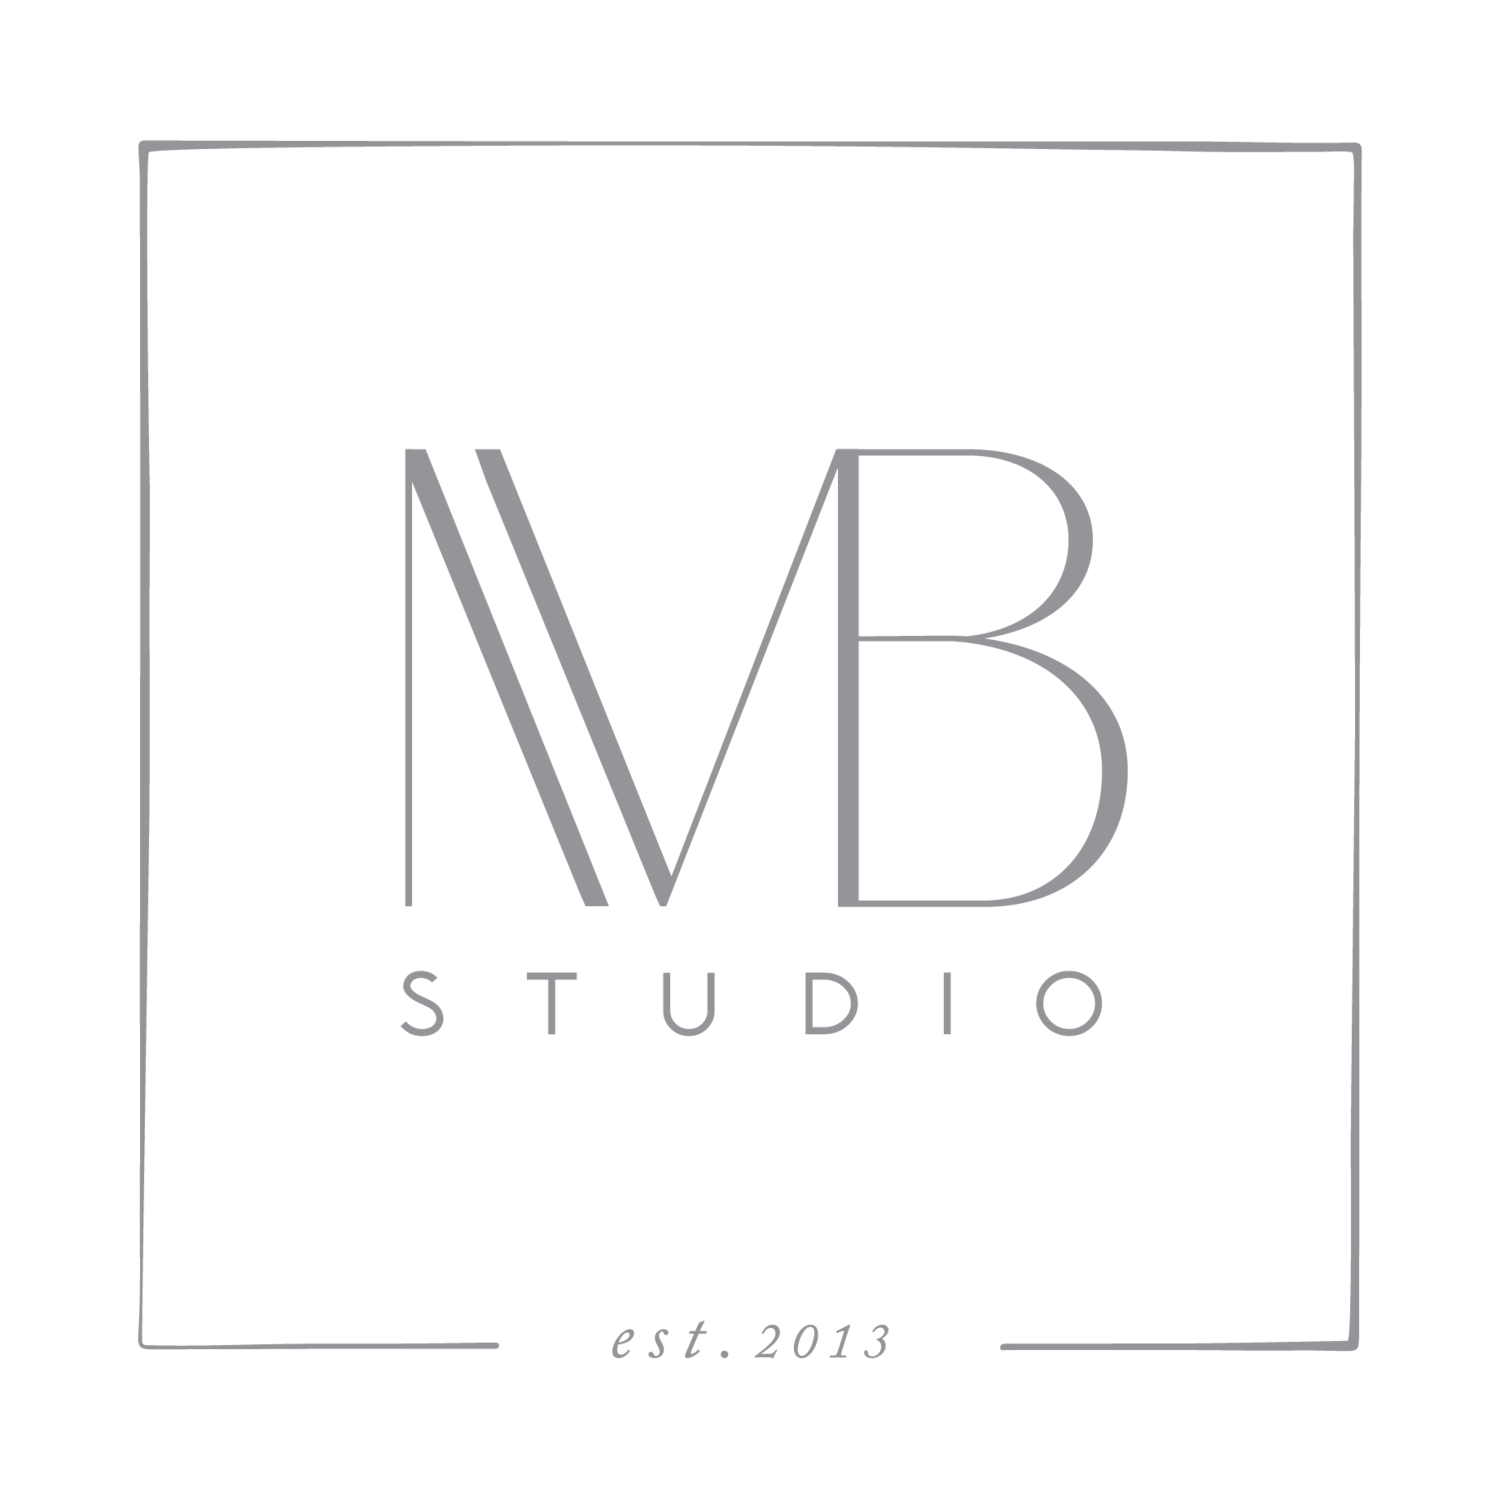 Studio MM&B - Los Angeles-Orange County- Destination wedding- Makeup artist & Hair stylist